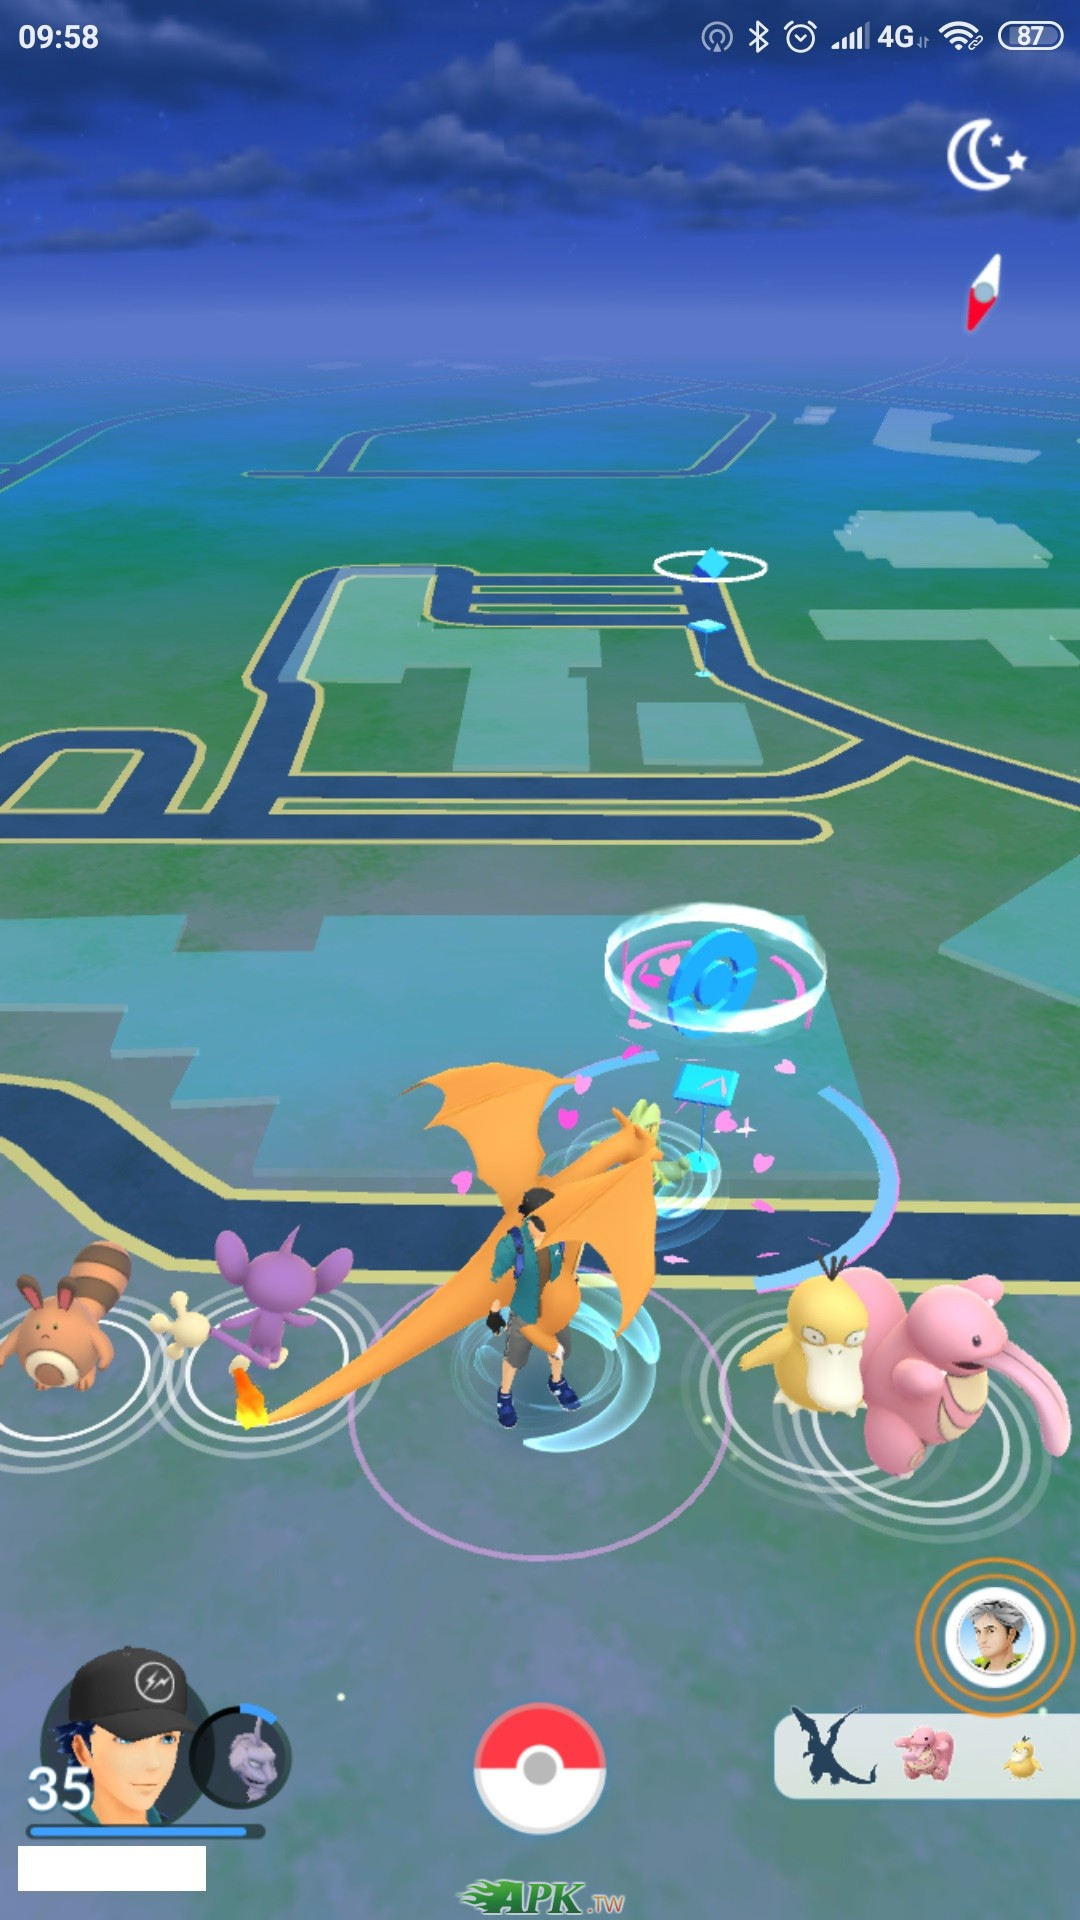 Screenshot_2019-05-08-09-58-18-461_com.nianticlabs.pokemongo.jpg